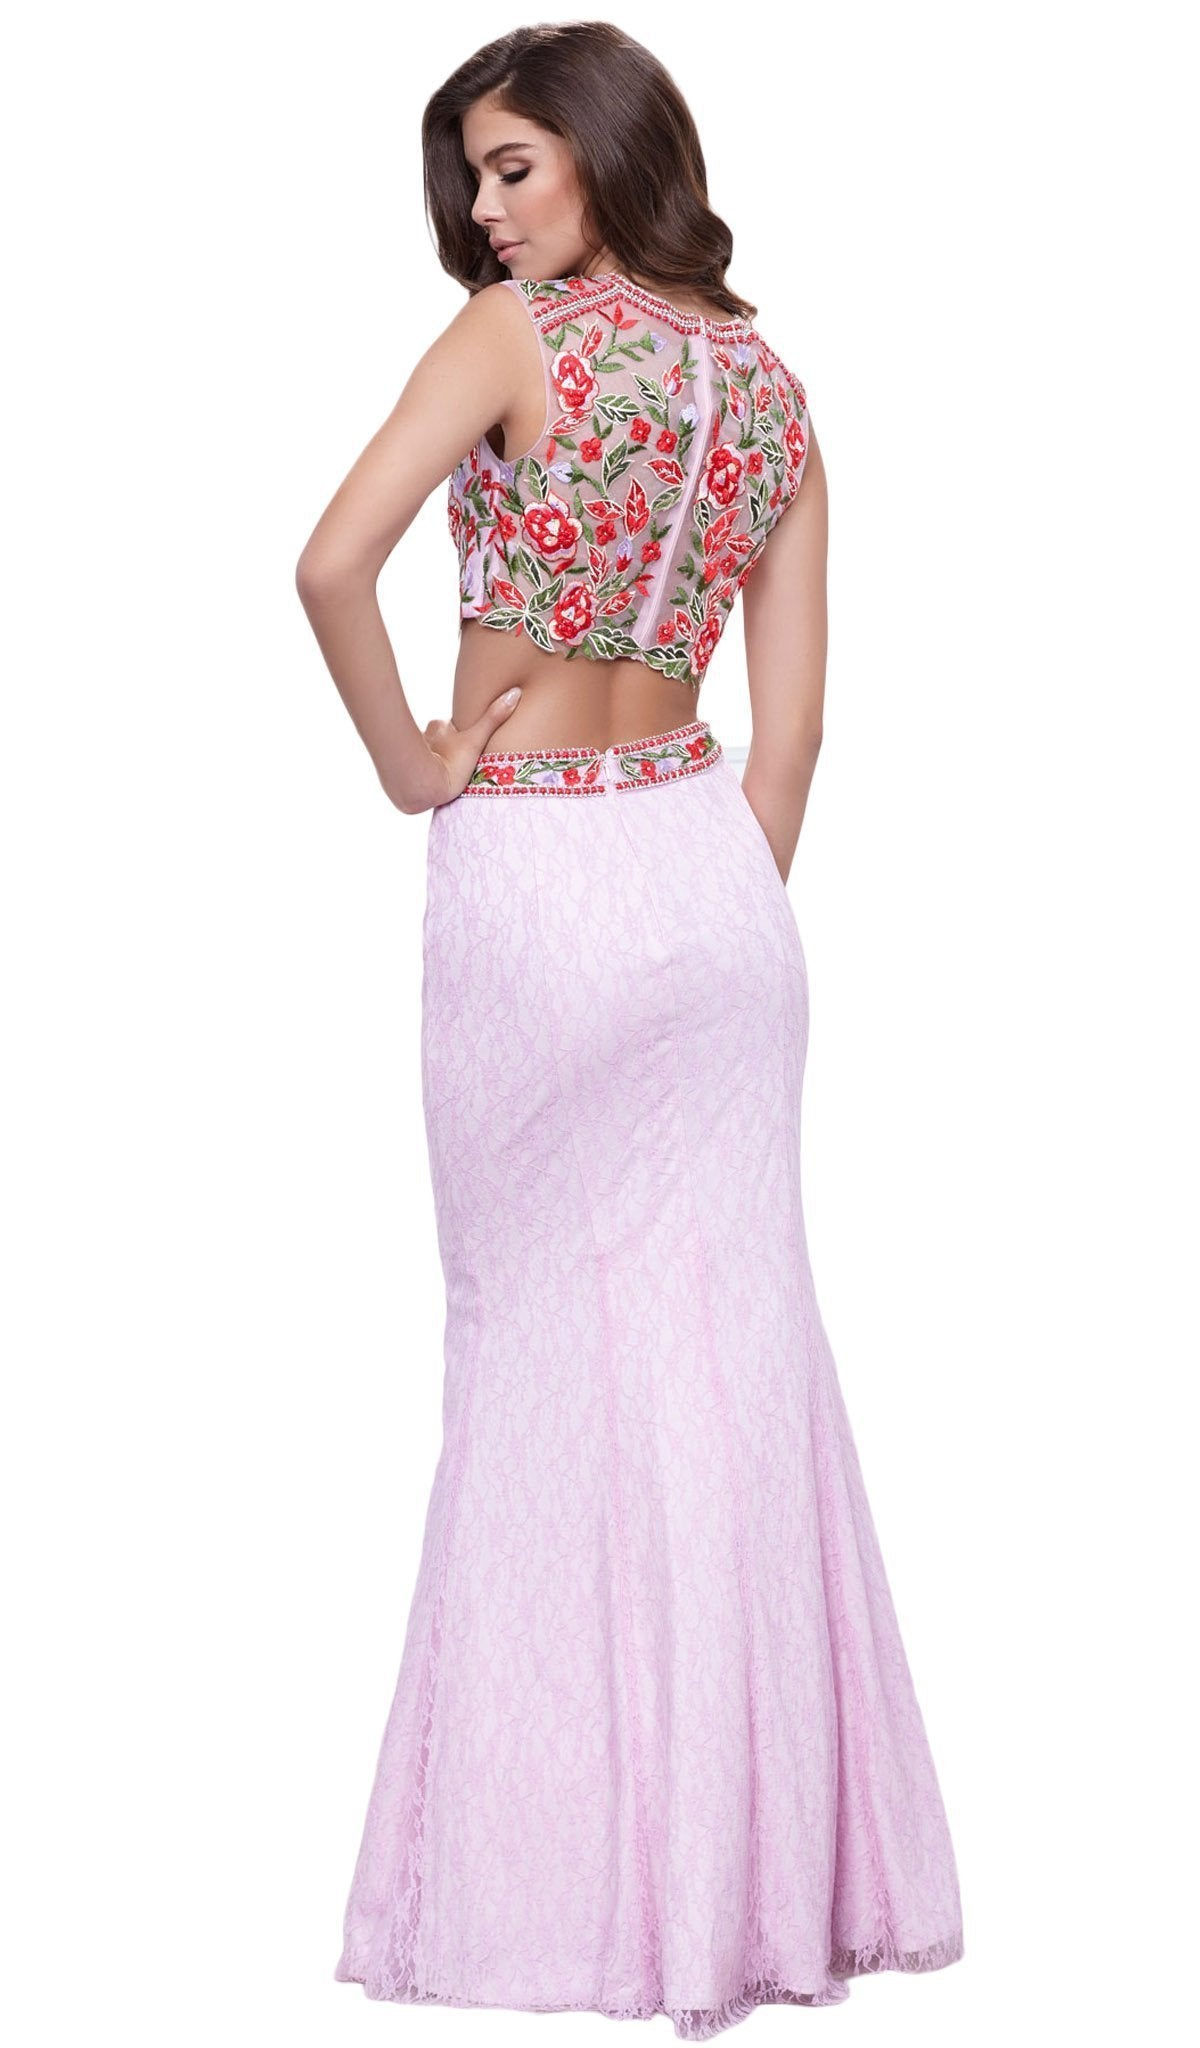 Nox Anabel - Embellished Two-Piece Mermaid Dress 8373SC